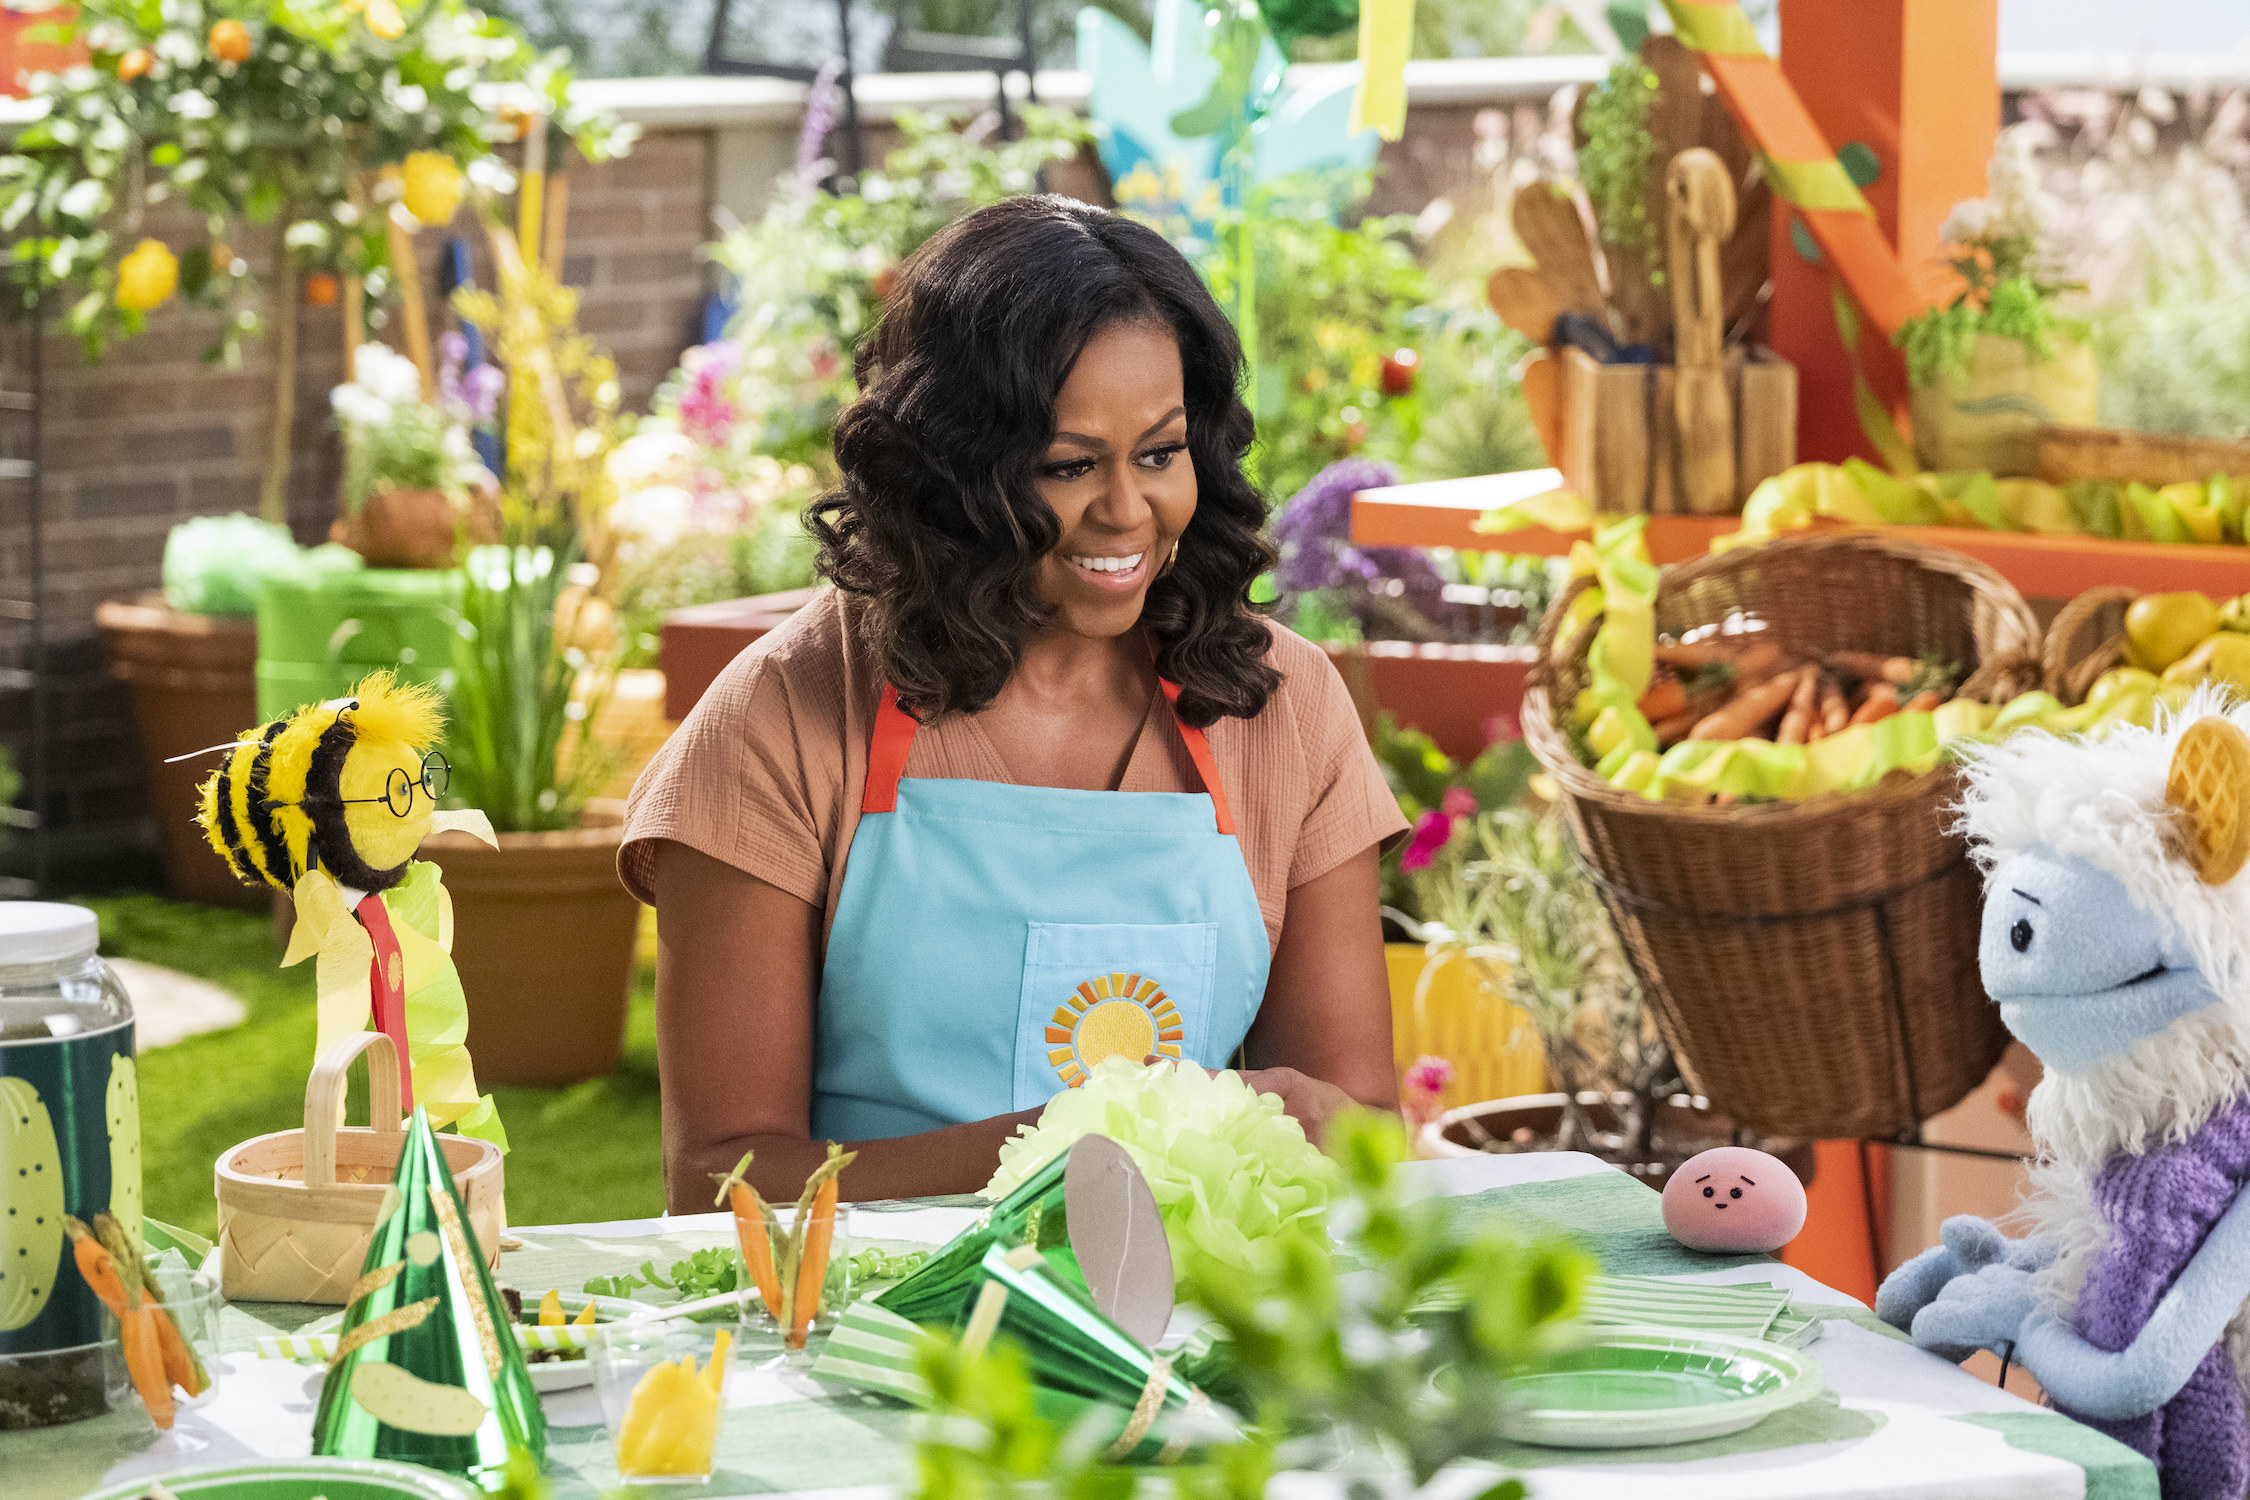 On a rooftop garden, Michelle Obama, wearing an apron, talks to Waffles, Mochi, and a bee puppet wearing a tie around a table dressed with decorations for a birthday party